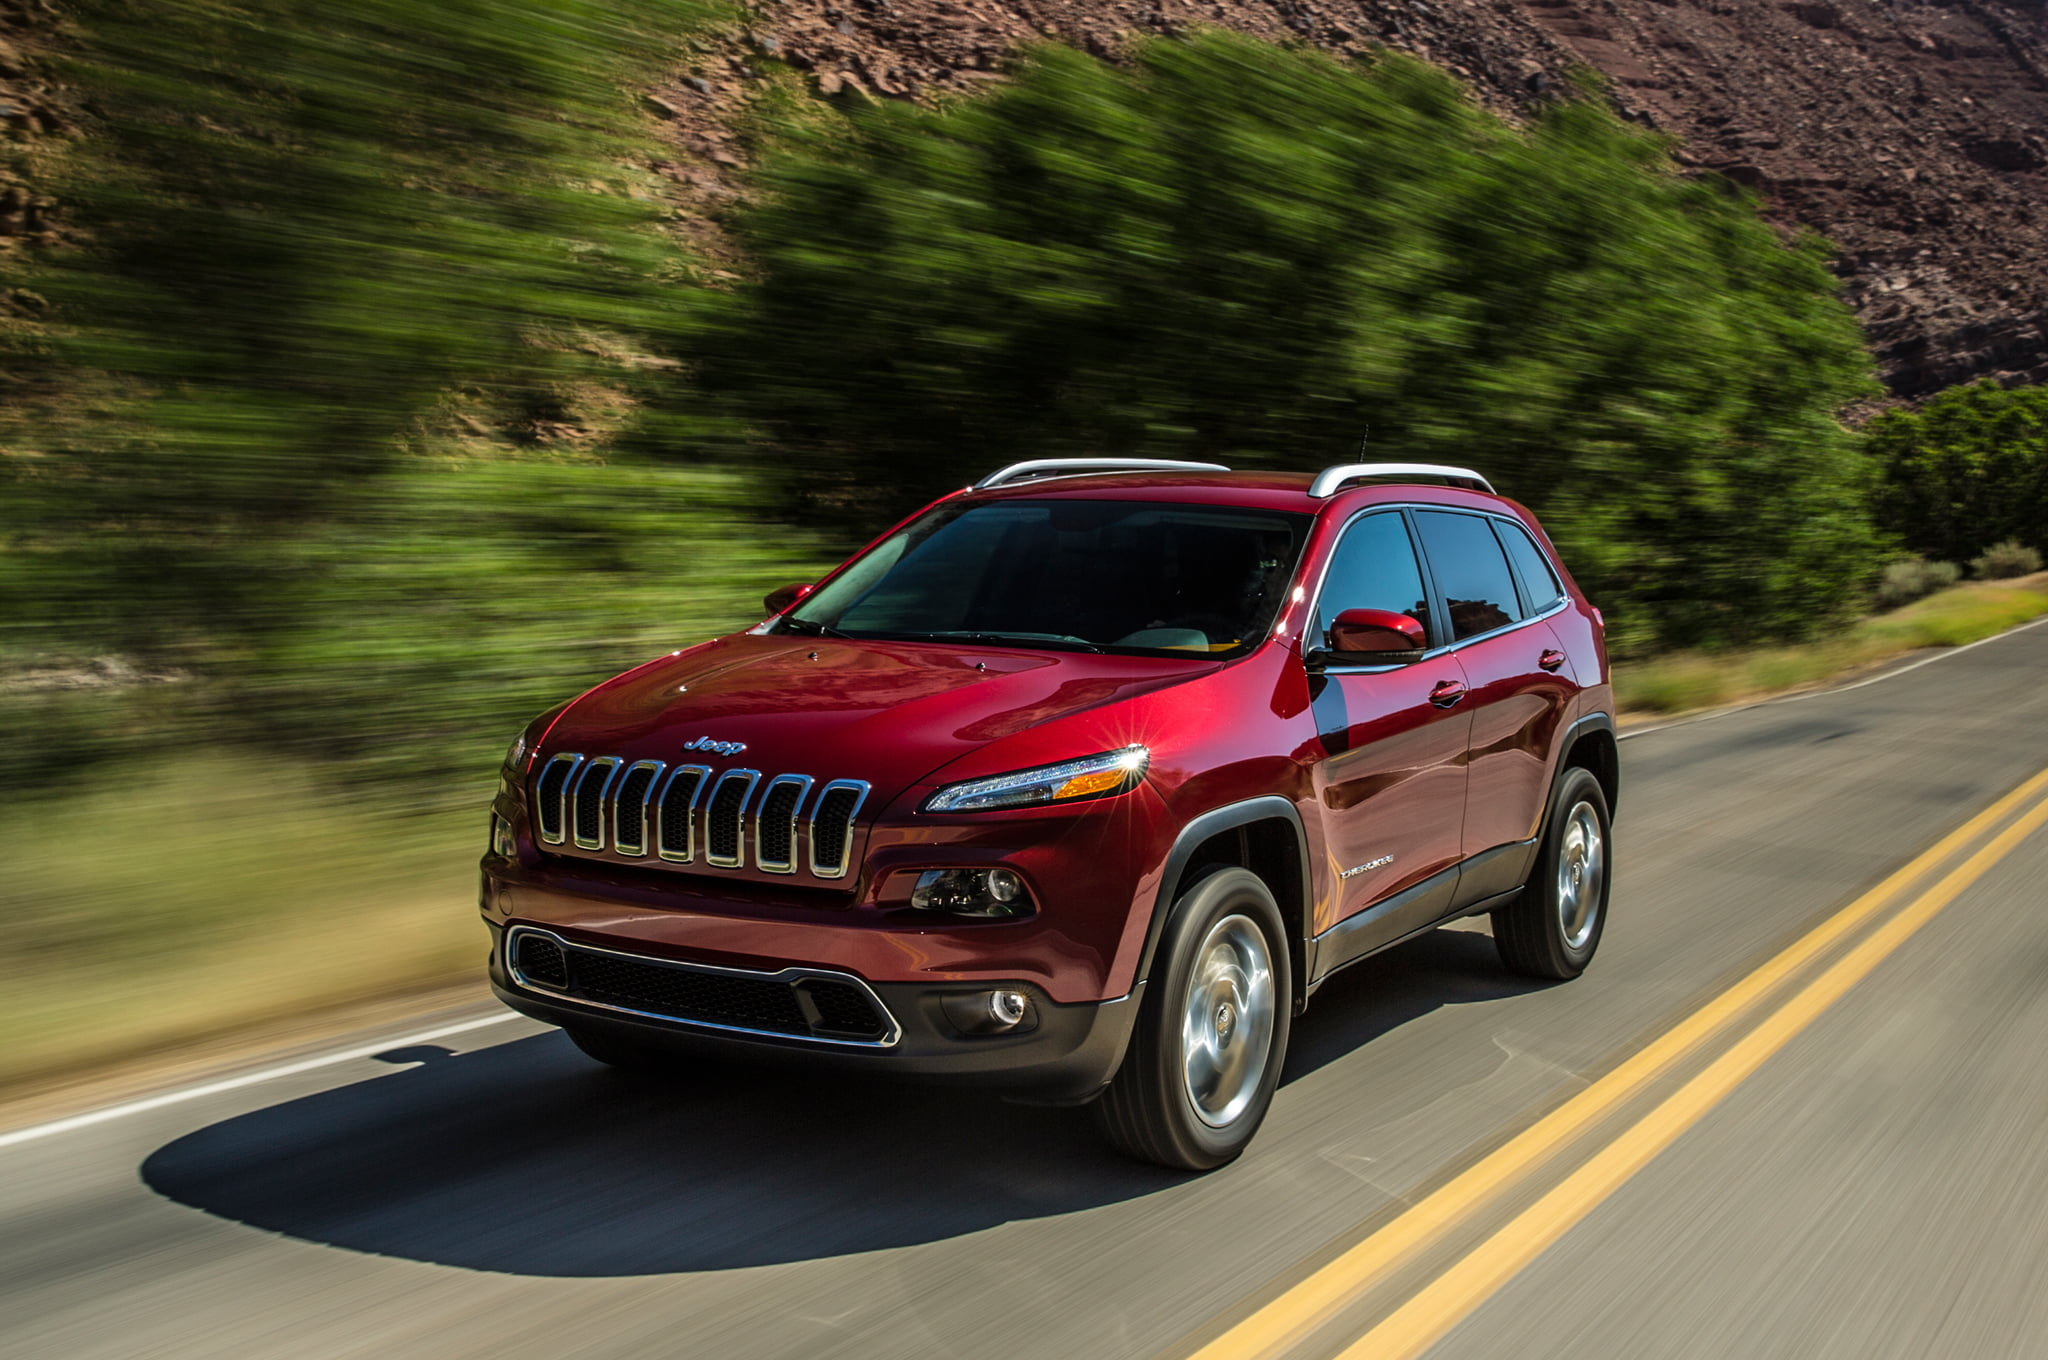 jeep cherokee photos wallpaper 65166